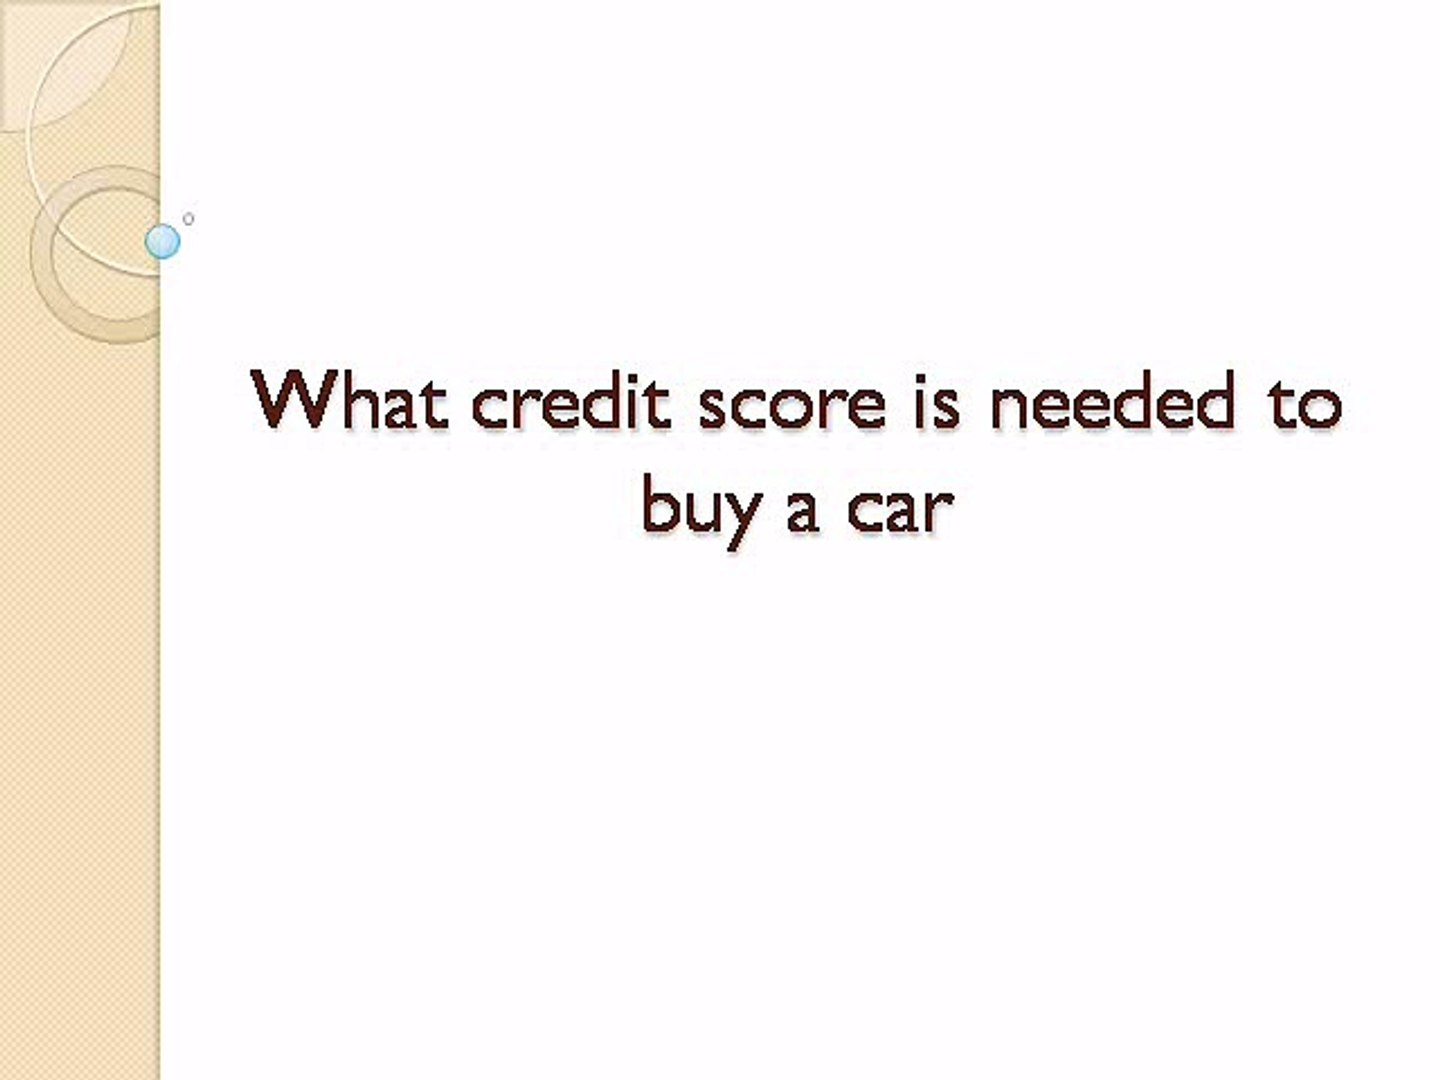 Credit Score Needed To Buy A Car >> Look On What Credit Score Is Needed To Buy A Car